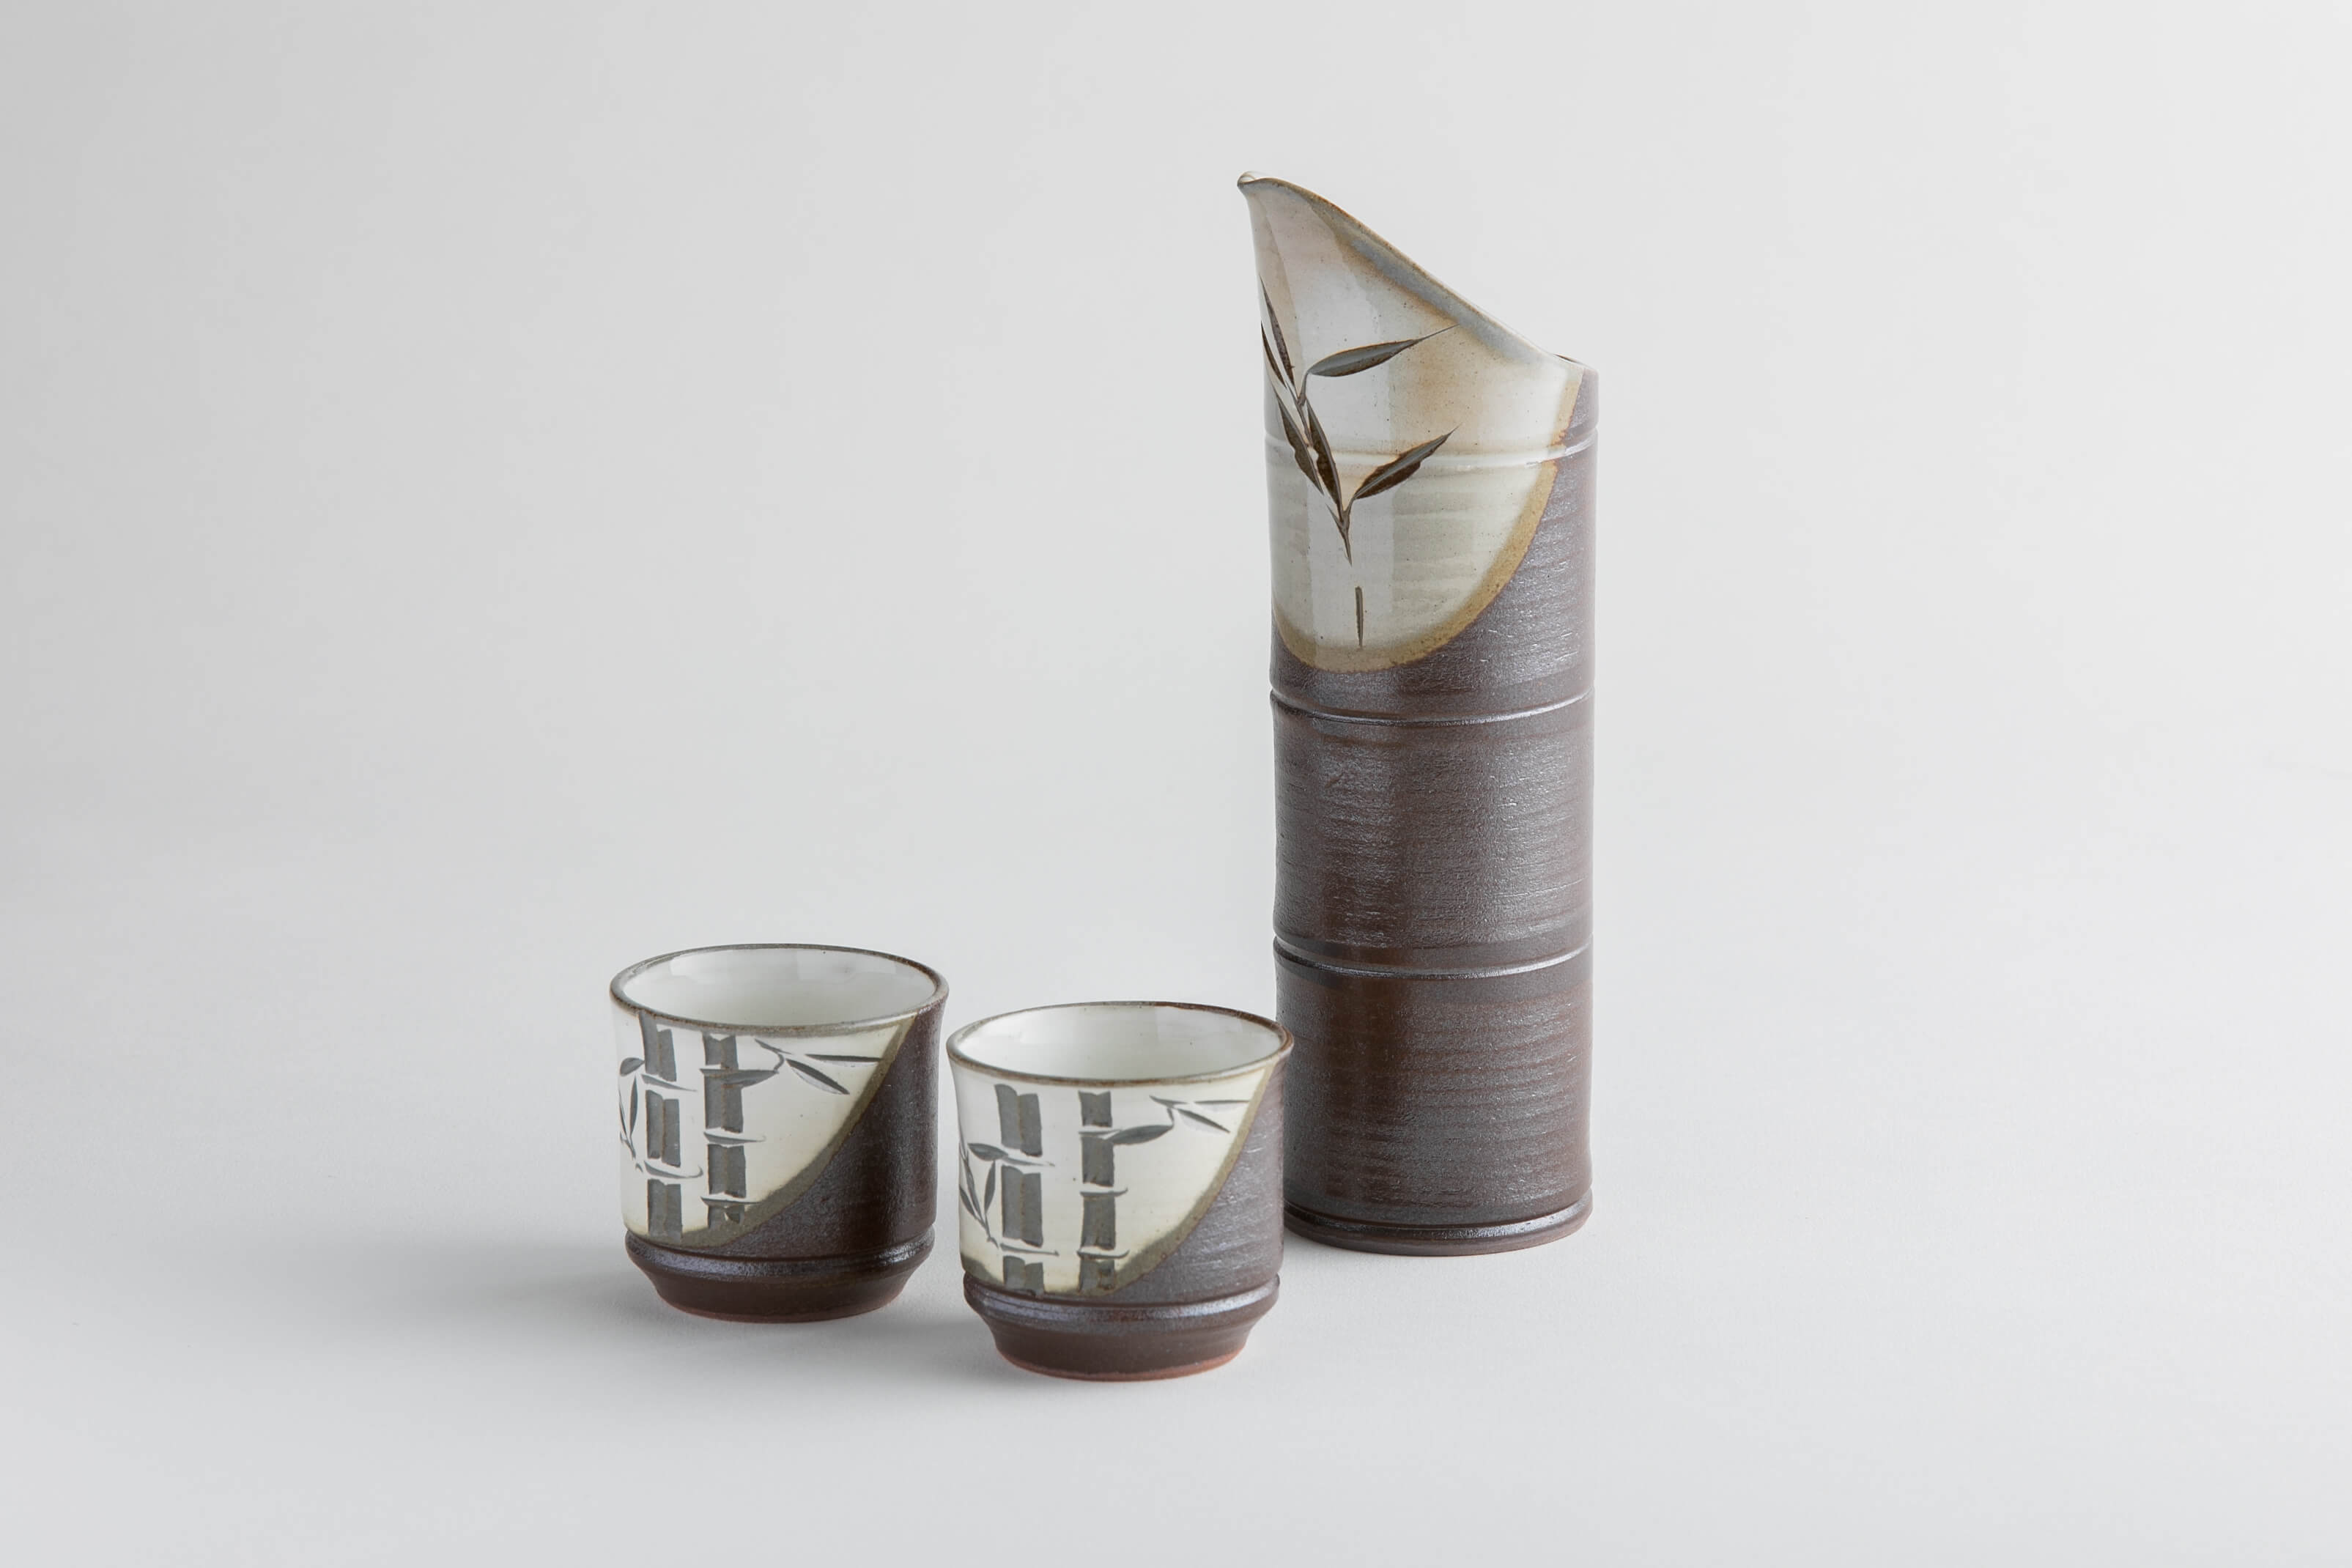 HORITAKE Vessels for sake